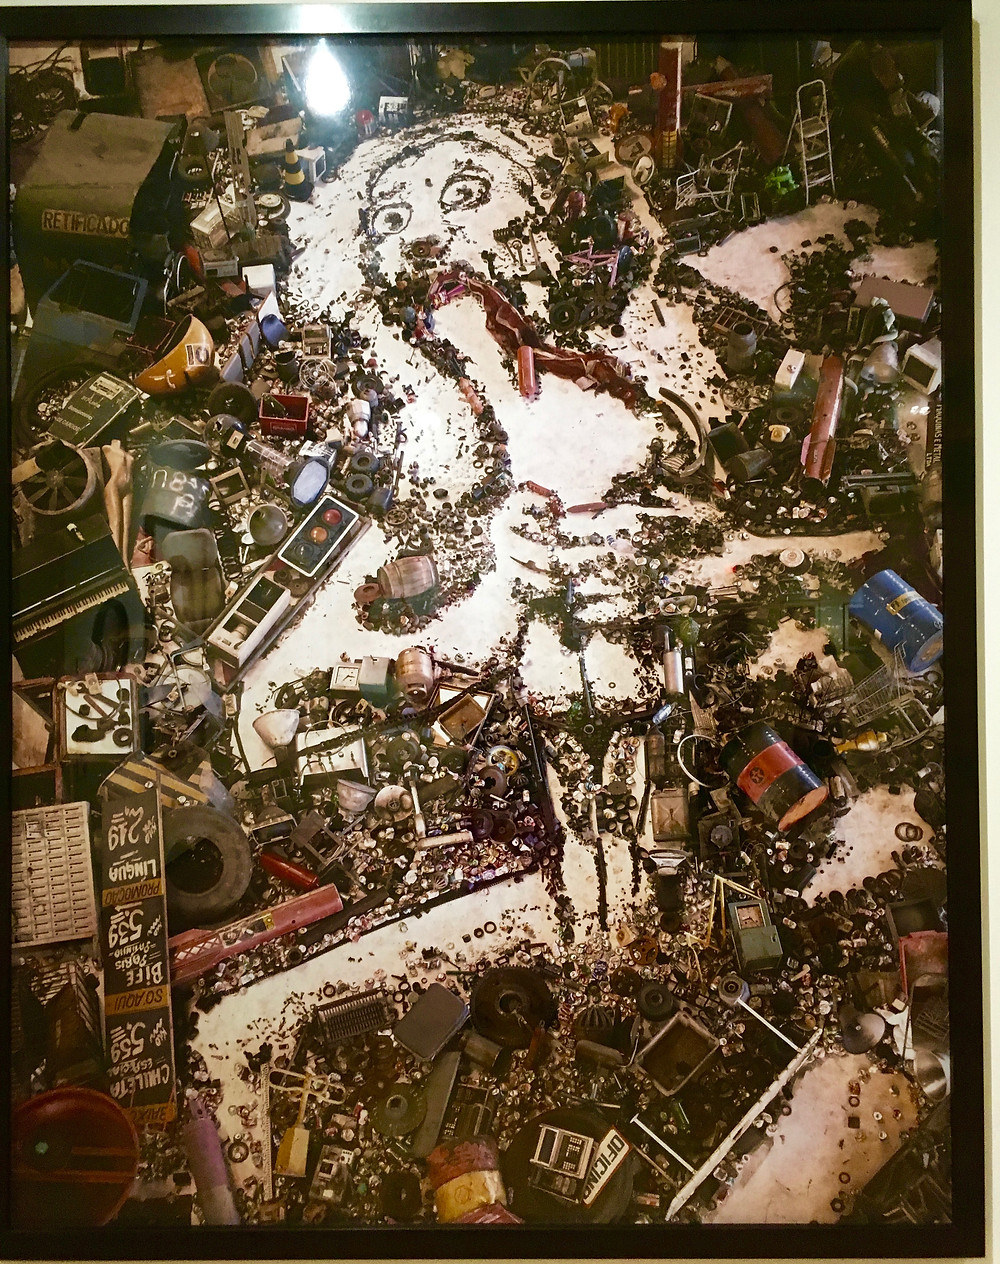 Vik Muniz: Goya's Saturn Devouring His Children, photograph of found objects, various media